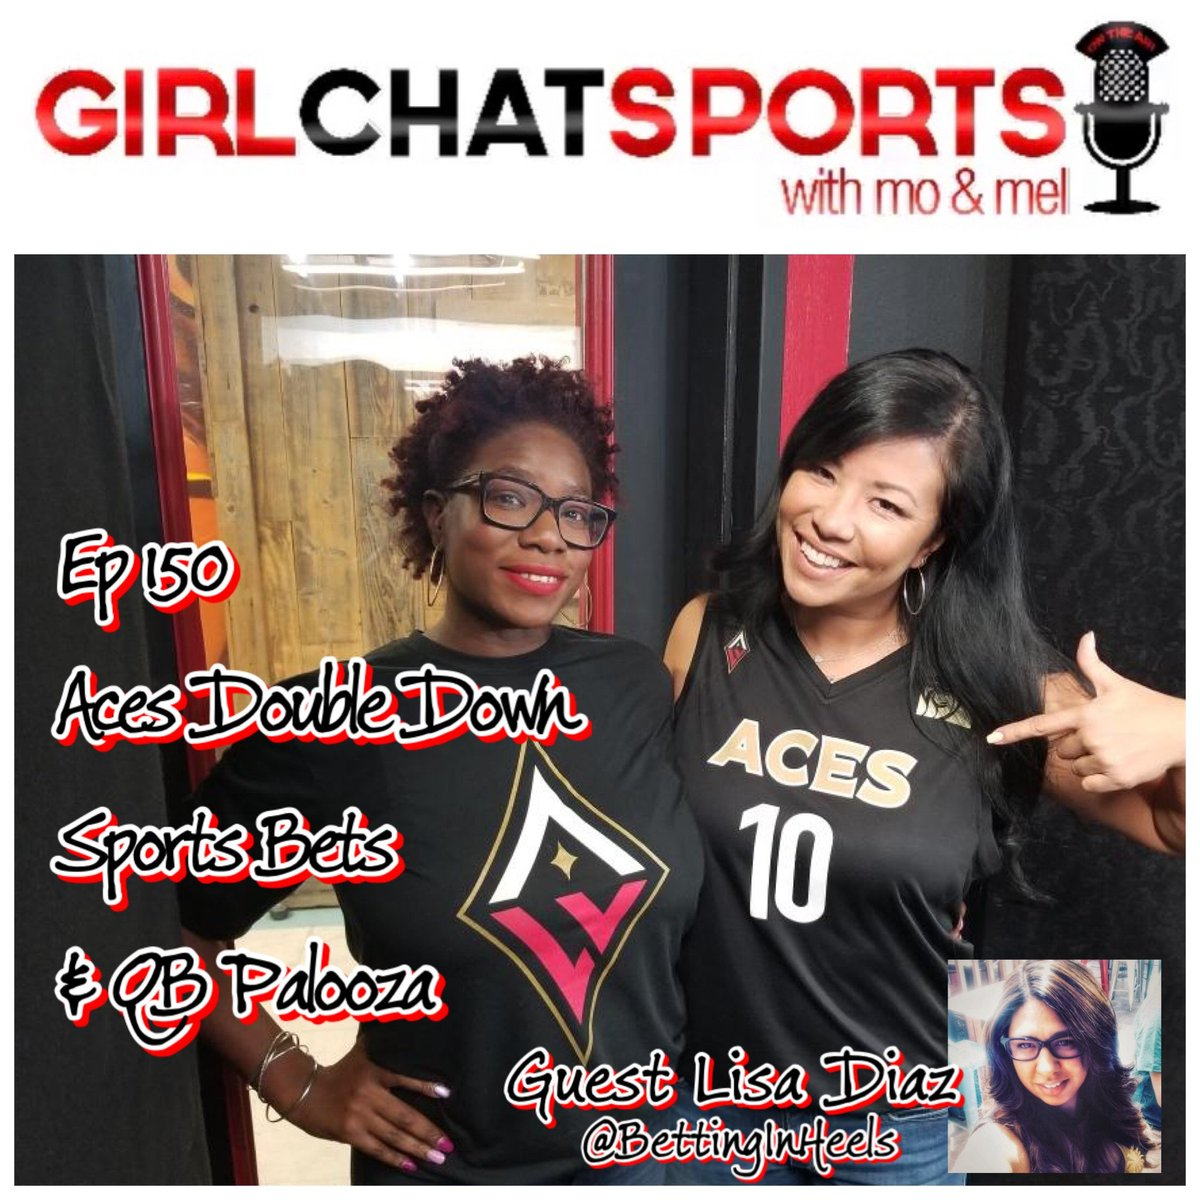 NEW EPISODE!!  Make sure to check out tonights episode on #YouTube w/ our guest @BettingInHeels we talk @LVAces their exciting games in the #WNBAPlayoffs & updates on #NFL week 2, QB woes over the league & #Sportsbetting  https://youtu.be/I8pXWcPmrlU   #Girlchatsports #BettingInHeels